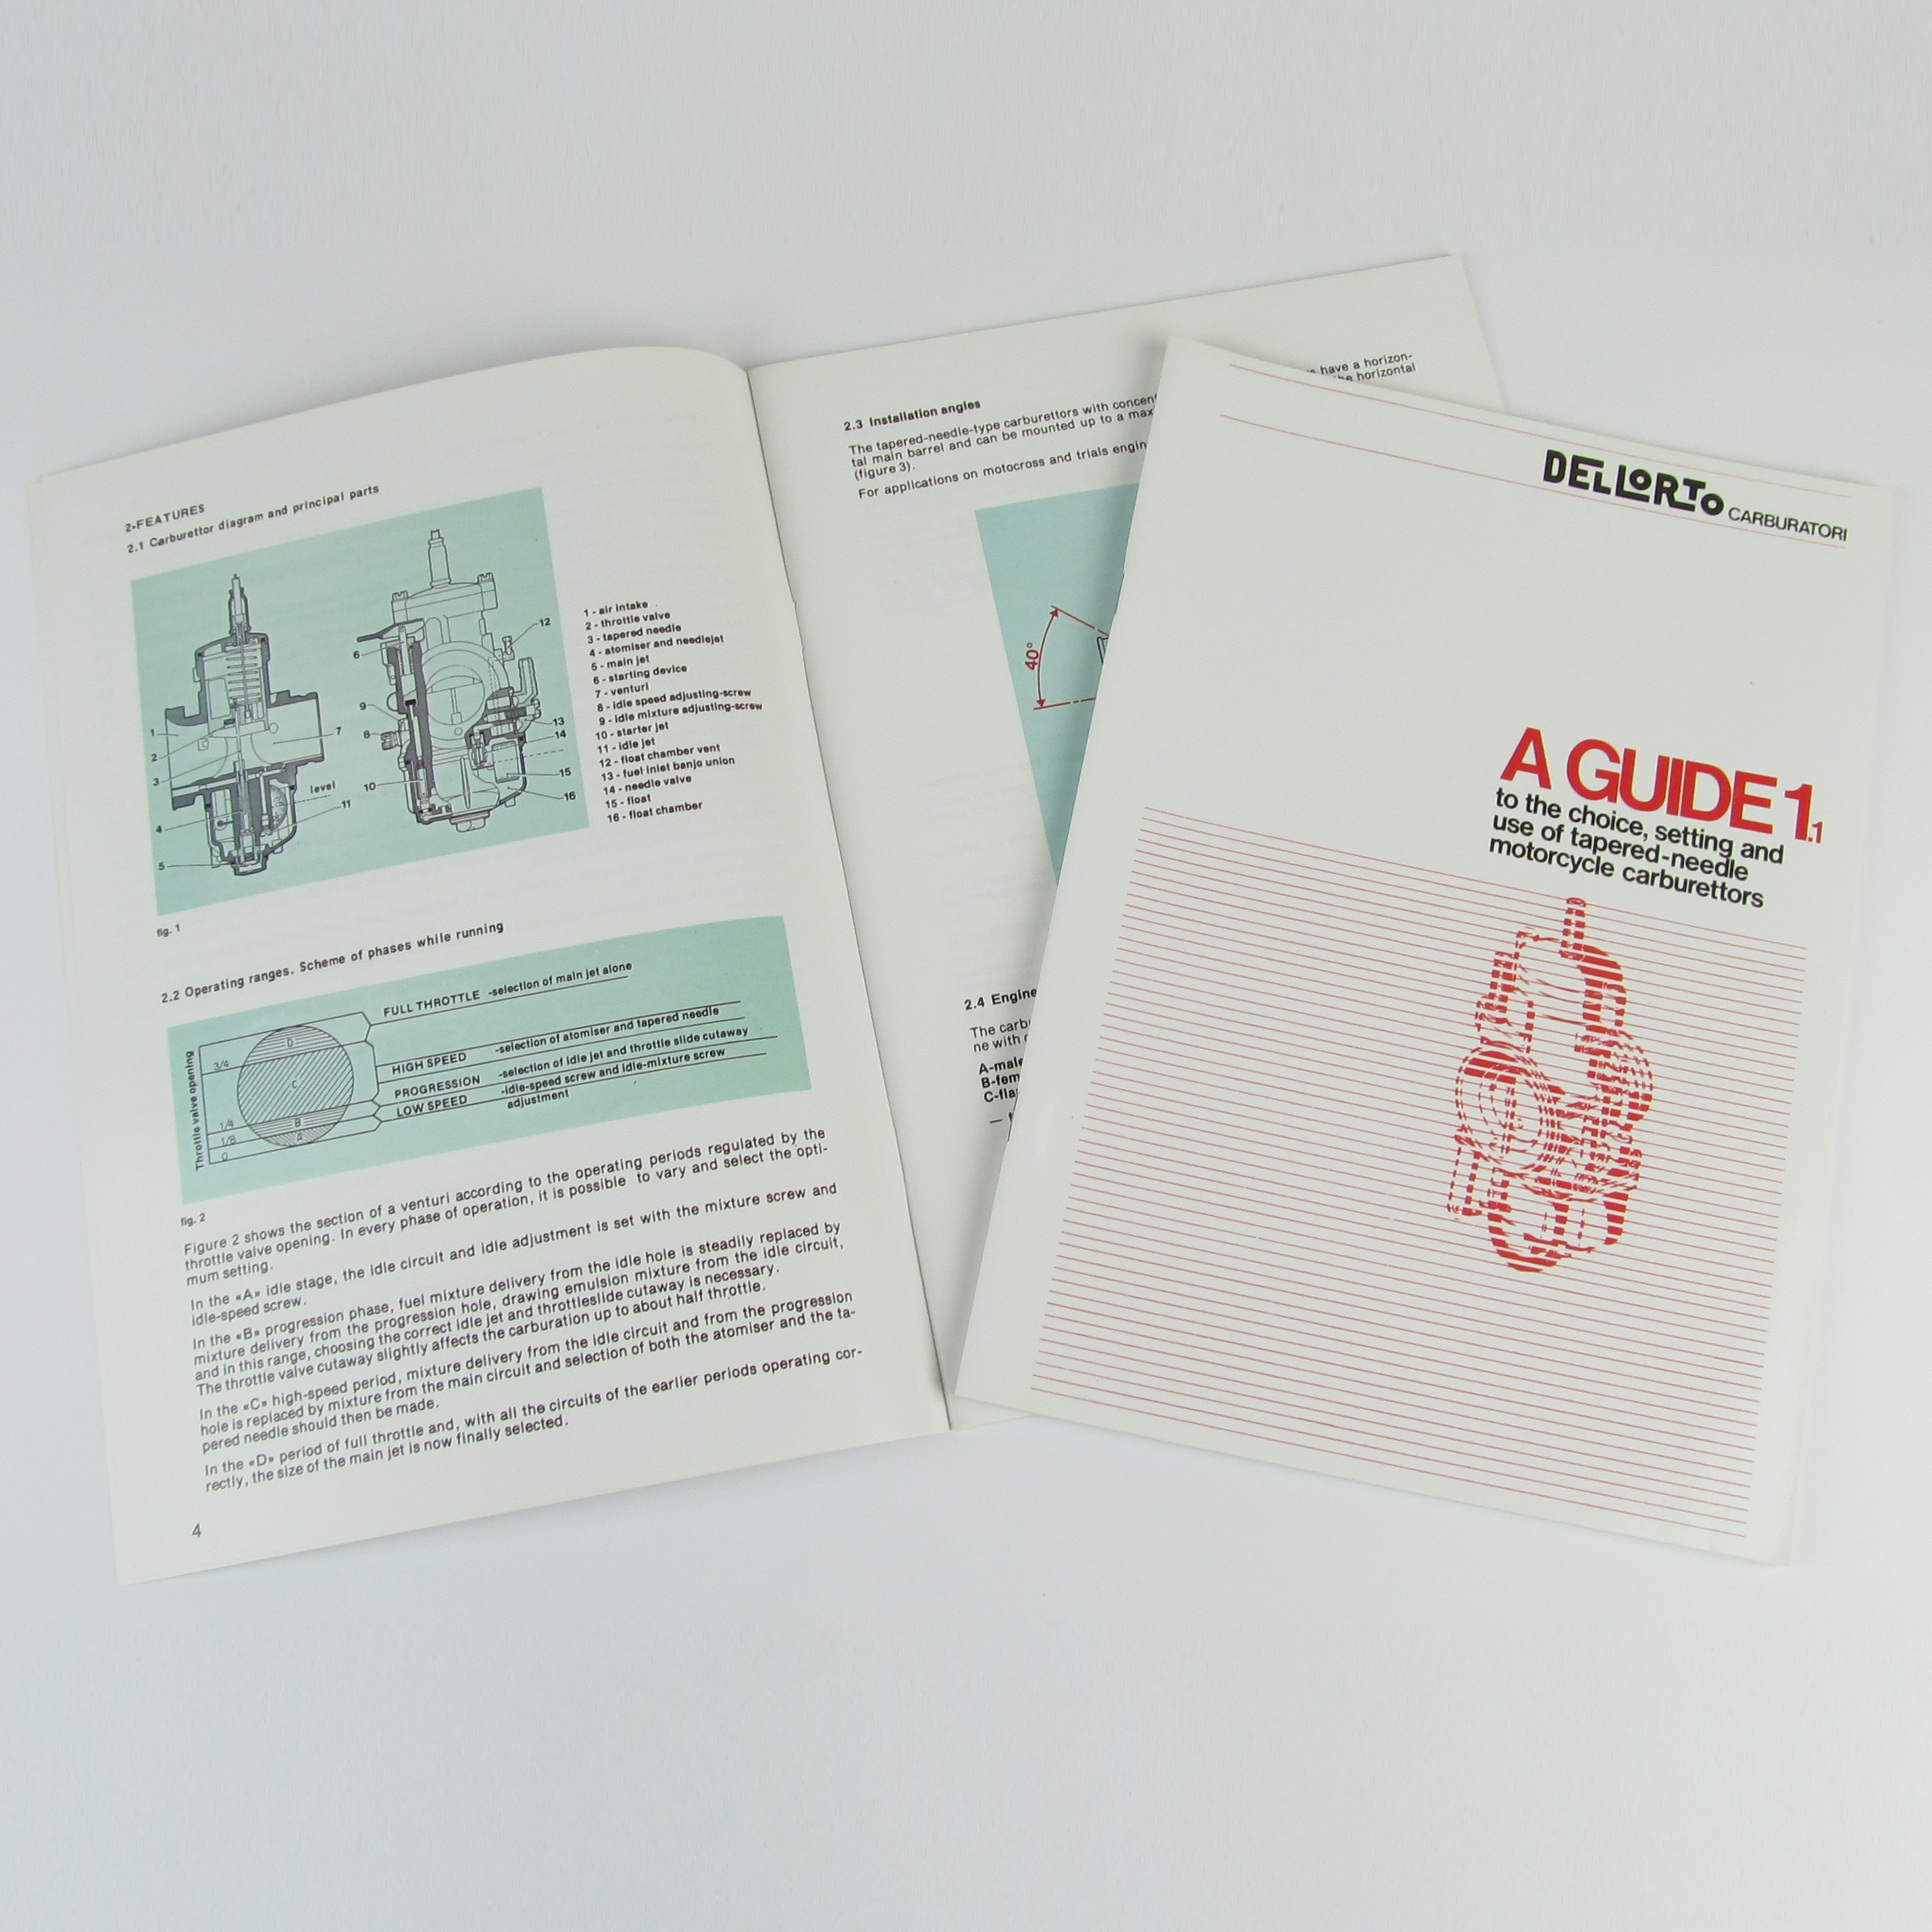 Dellorto Manual Dual Air Zenith Ob1 Compressor Wiring Diagram For With Vacuum E Mix Universal Ebay Array Guide 1 Motorcycle Carb Tuning Eurocarb Rh